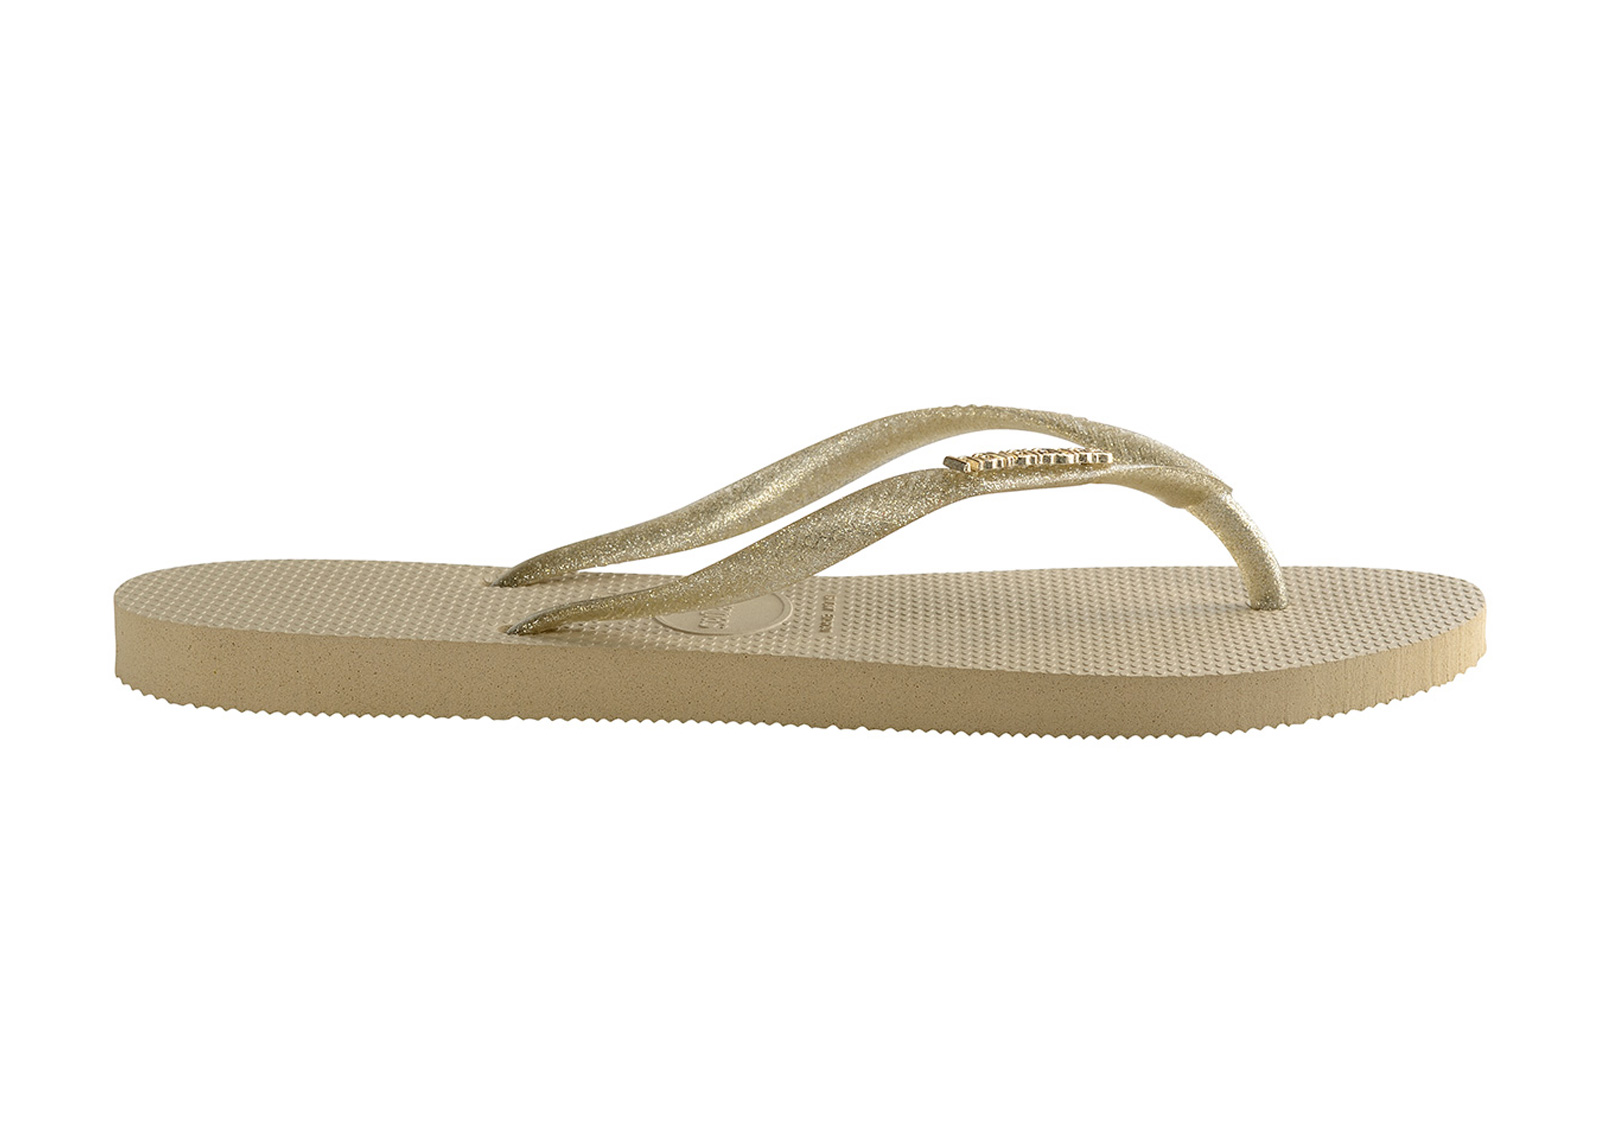 0e354f3e2 Flip-Flops Slim Logo Metallic Sand Grey-light Golden - Brand Havaianas